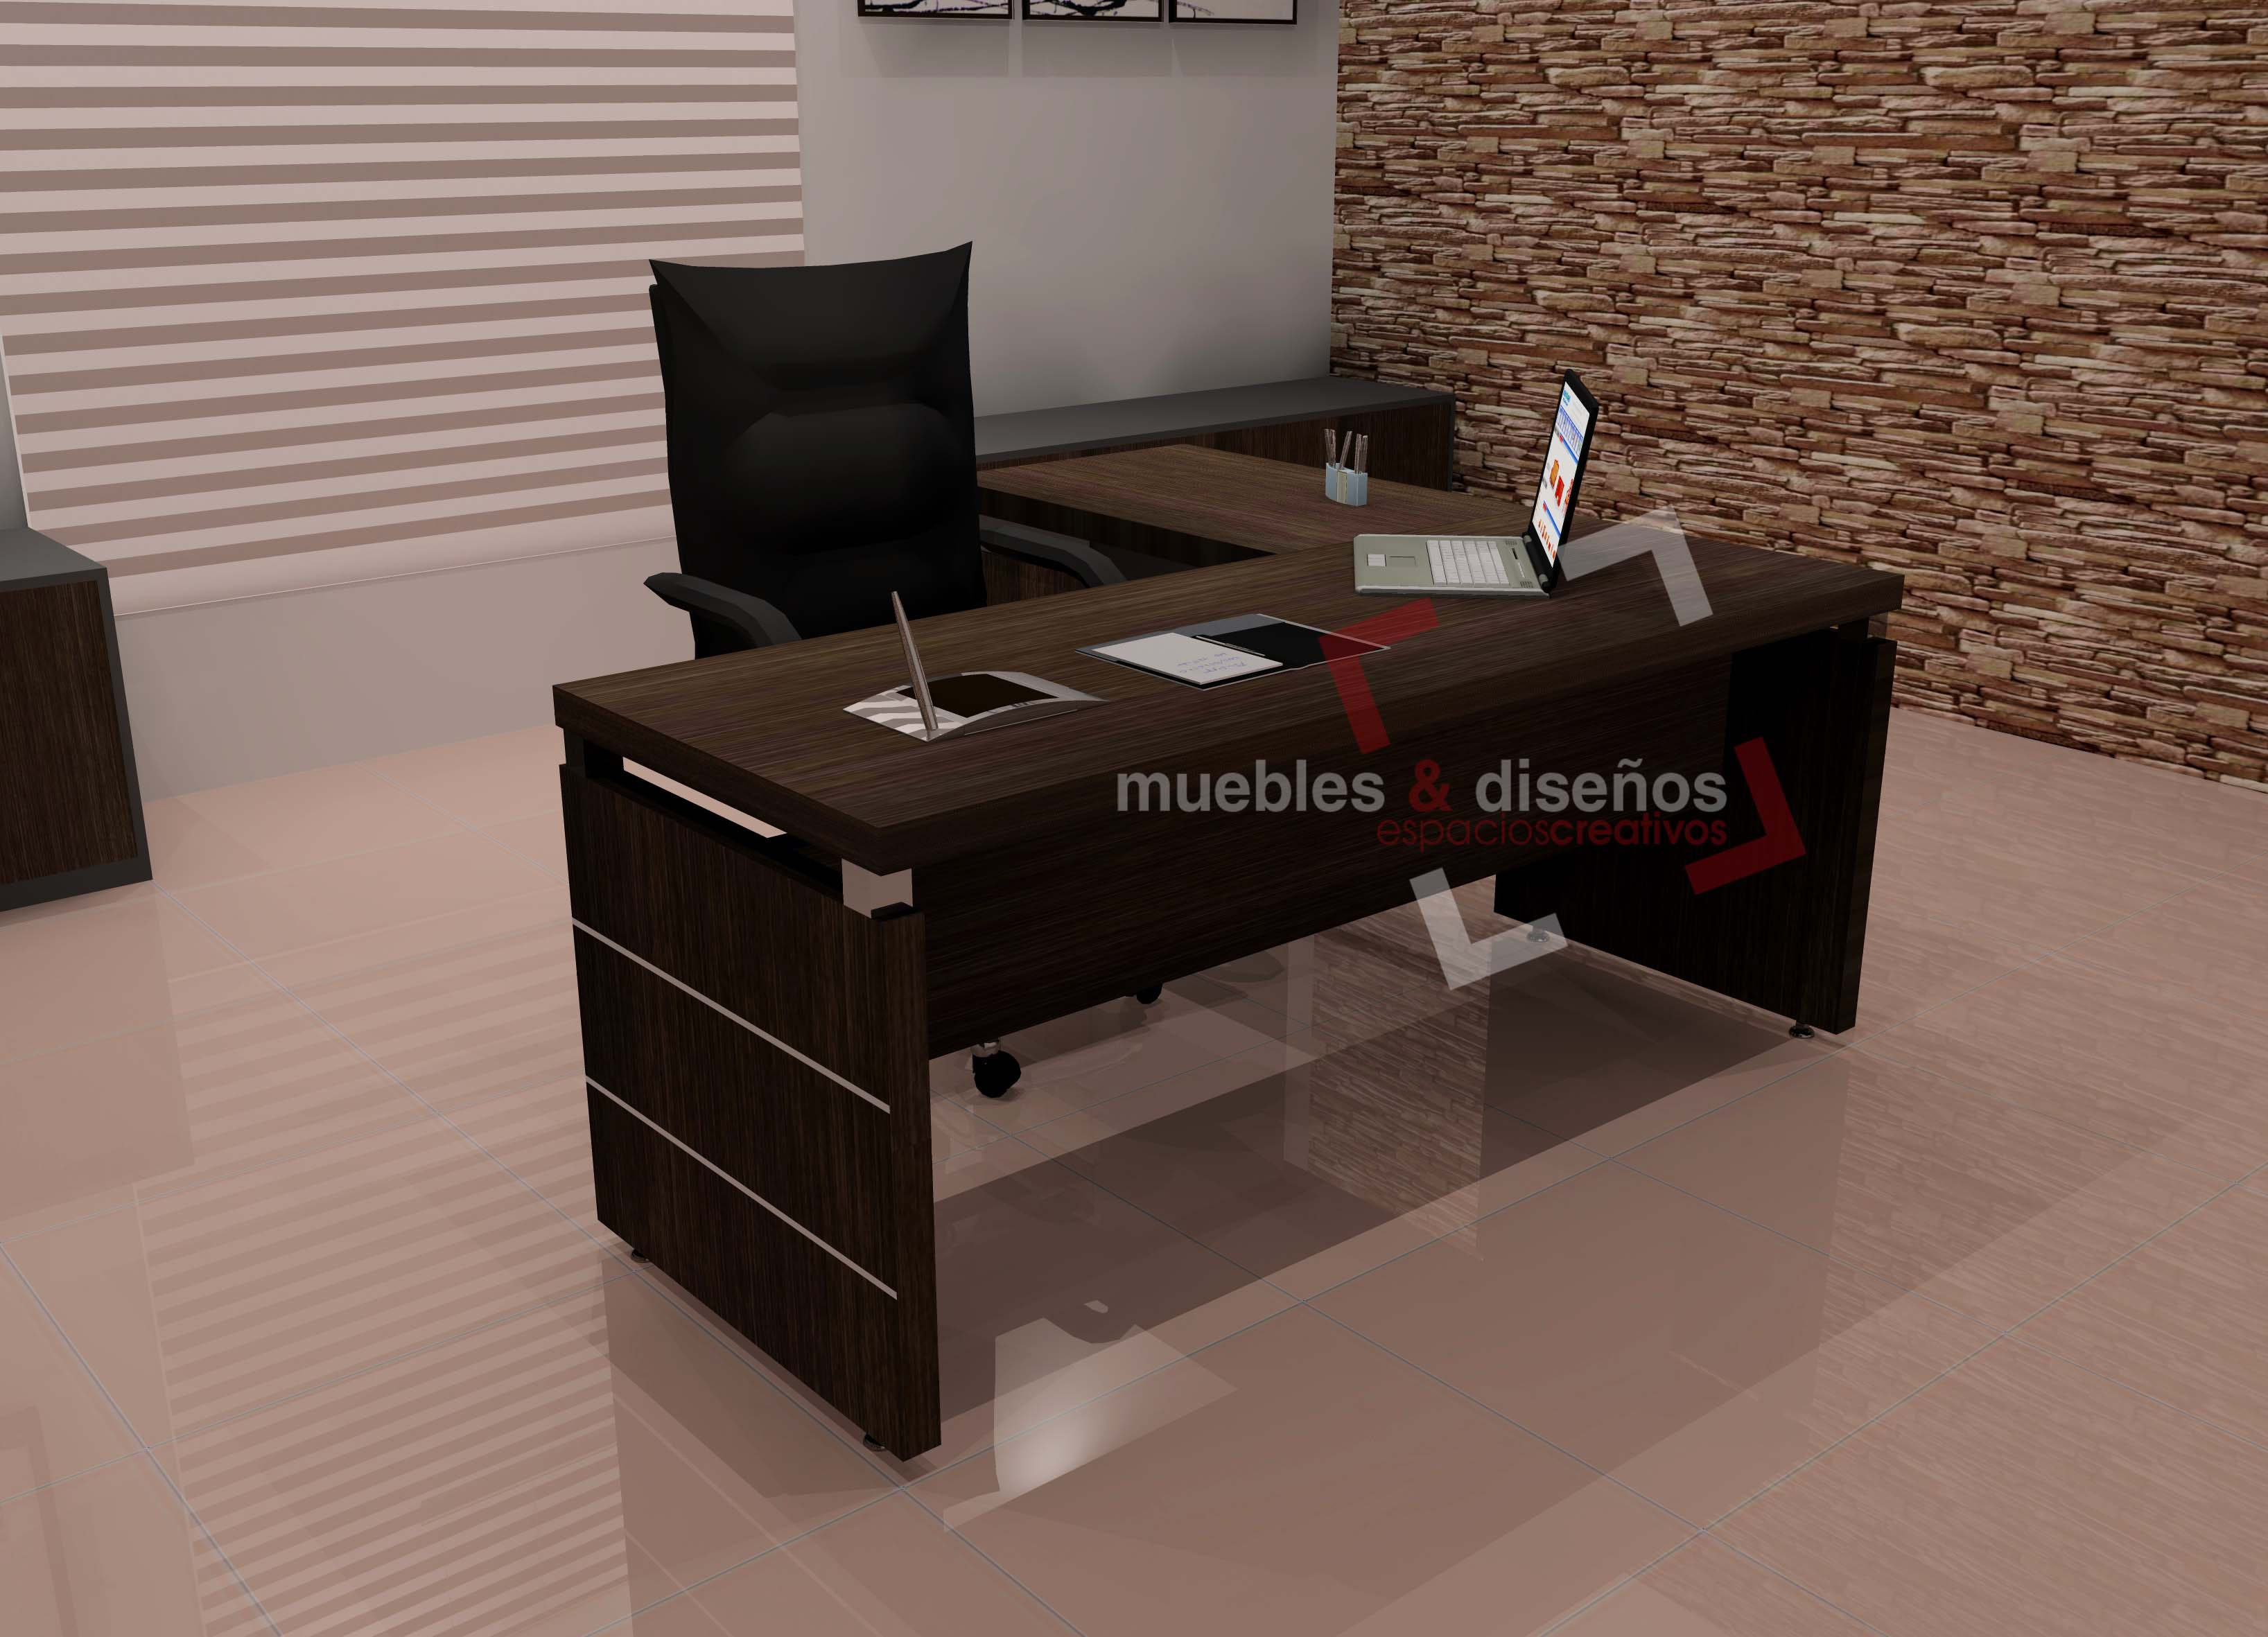 Projects 3 Muebles Y Dise Os Part 3